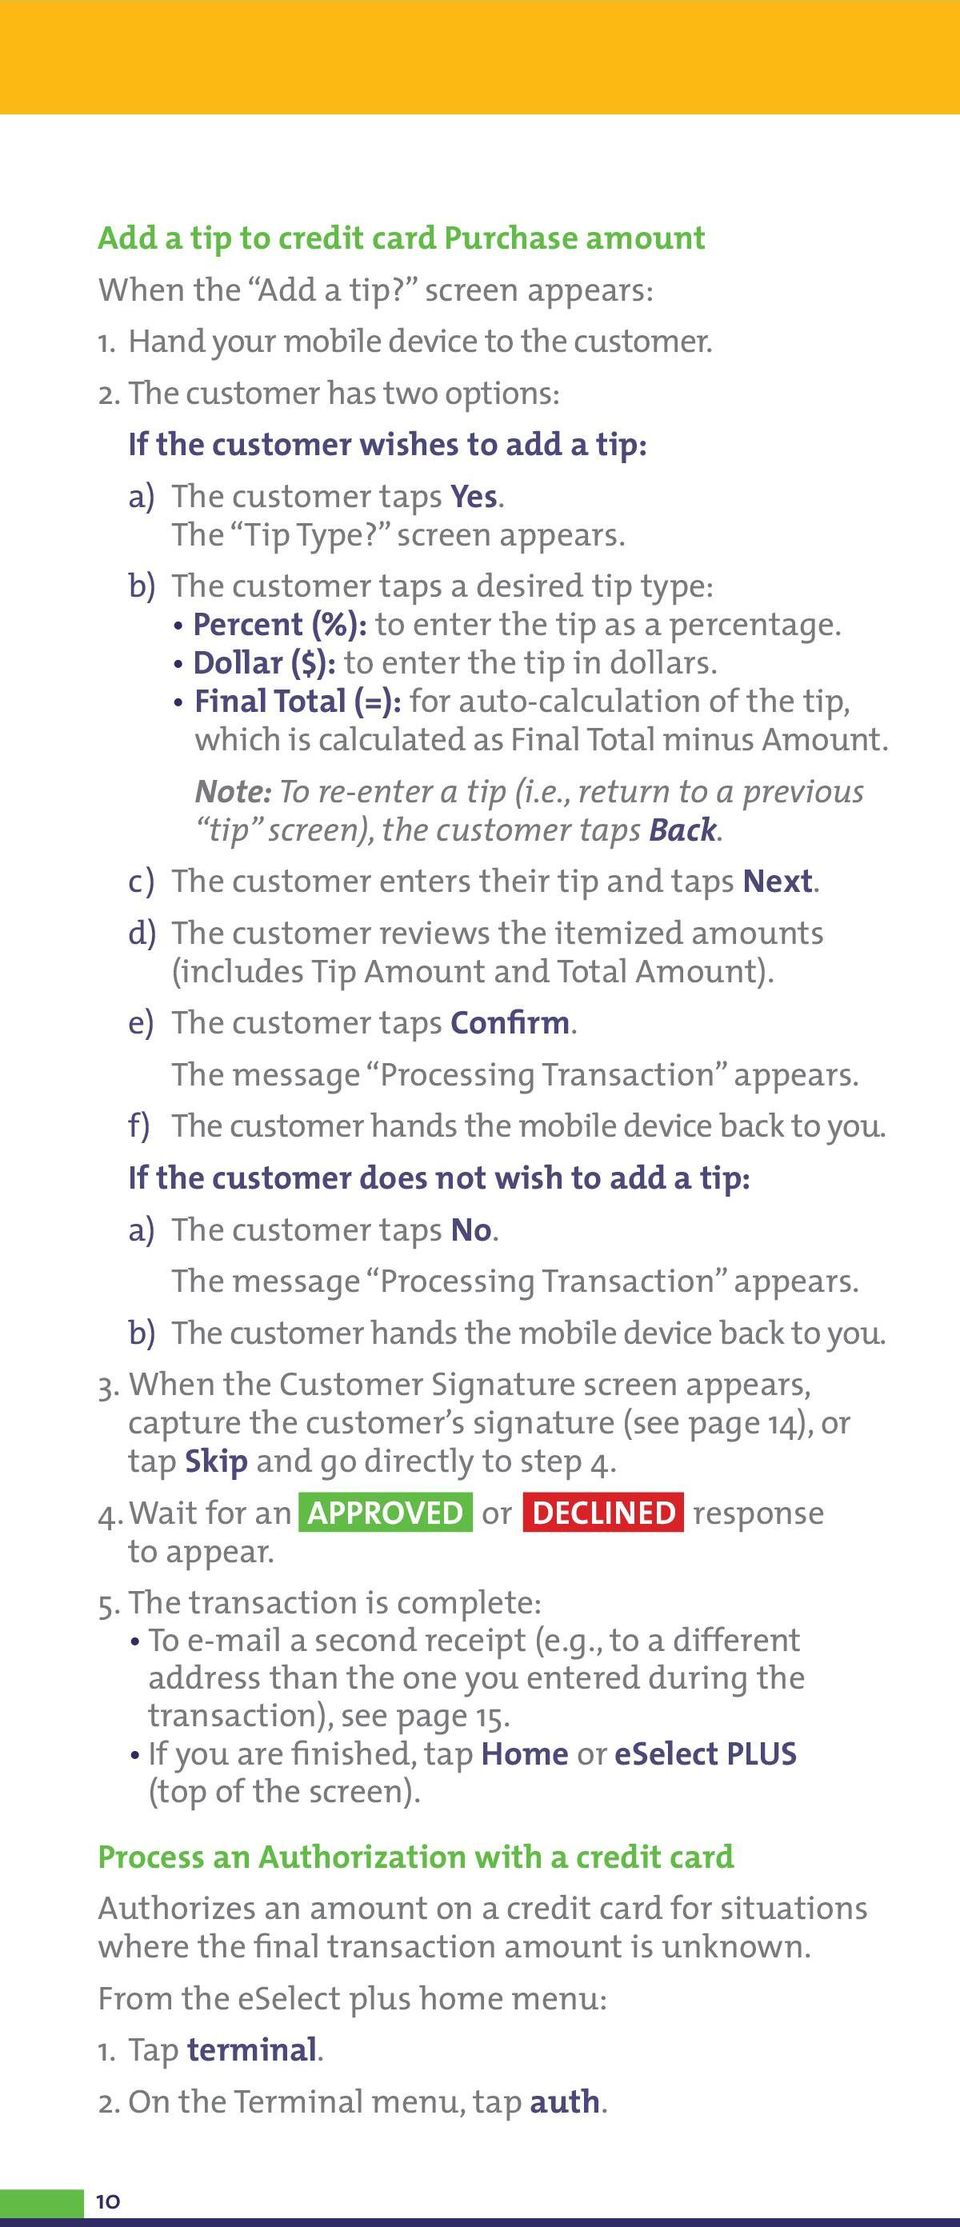 b) The customer taps a desired tip type: Percent (%): to enter the tip as a percentage. Dollar ($): to enter the tip in dollars.